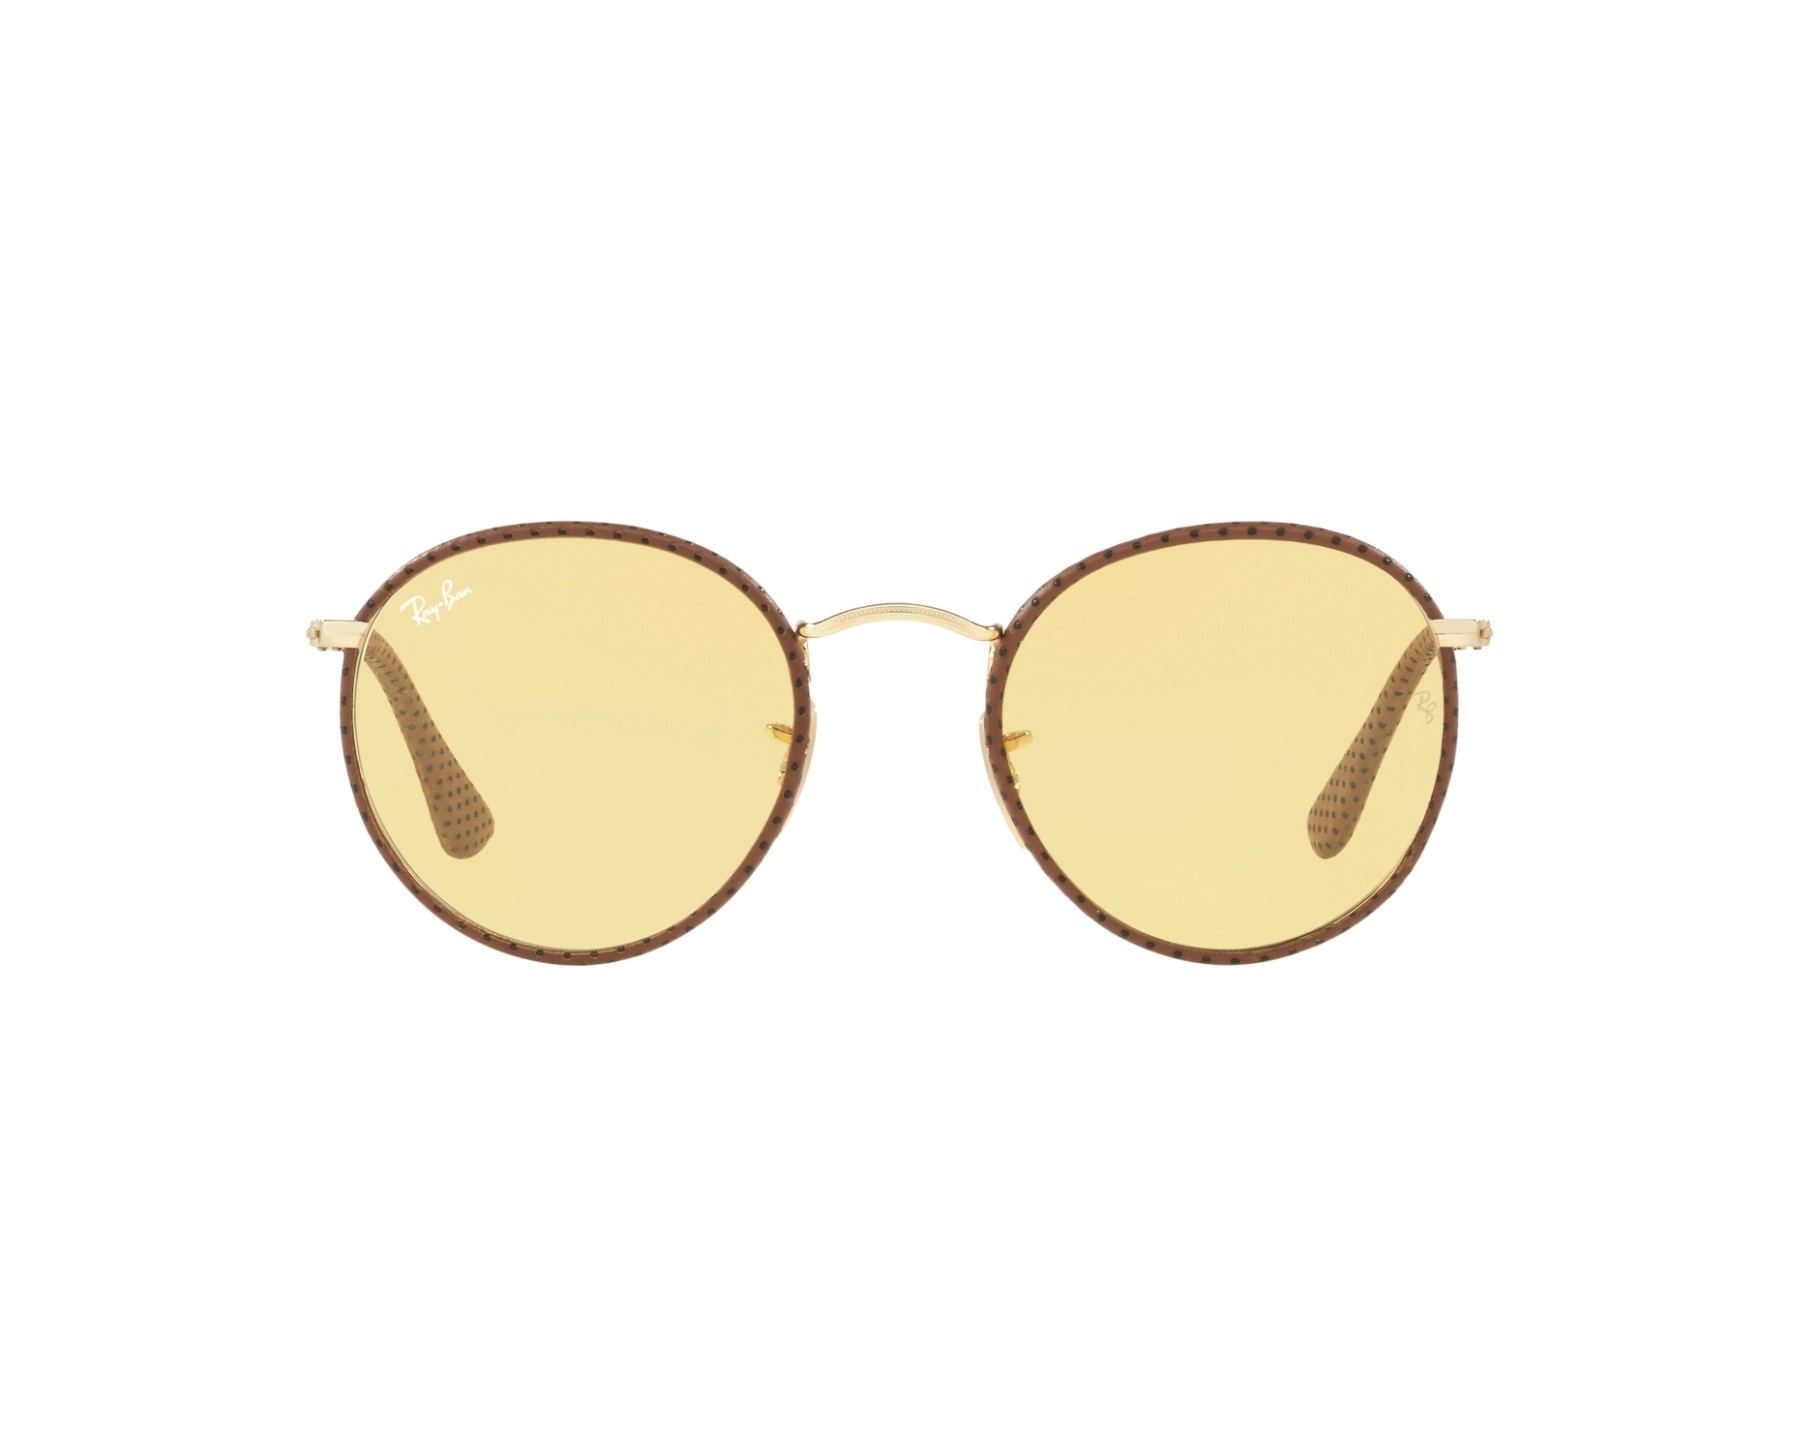 low cost ray ban round yellow classic sunglasses 41d96 45f33  closeout  sunglasses ray ban rb 3475 q 90424a 50 21 gold copper brown 0a654 71837 82fa8d6cfb